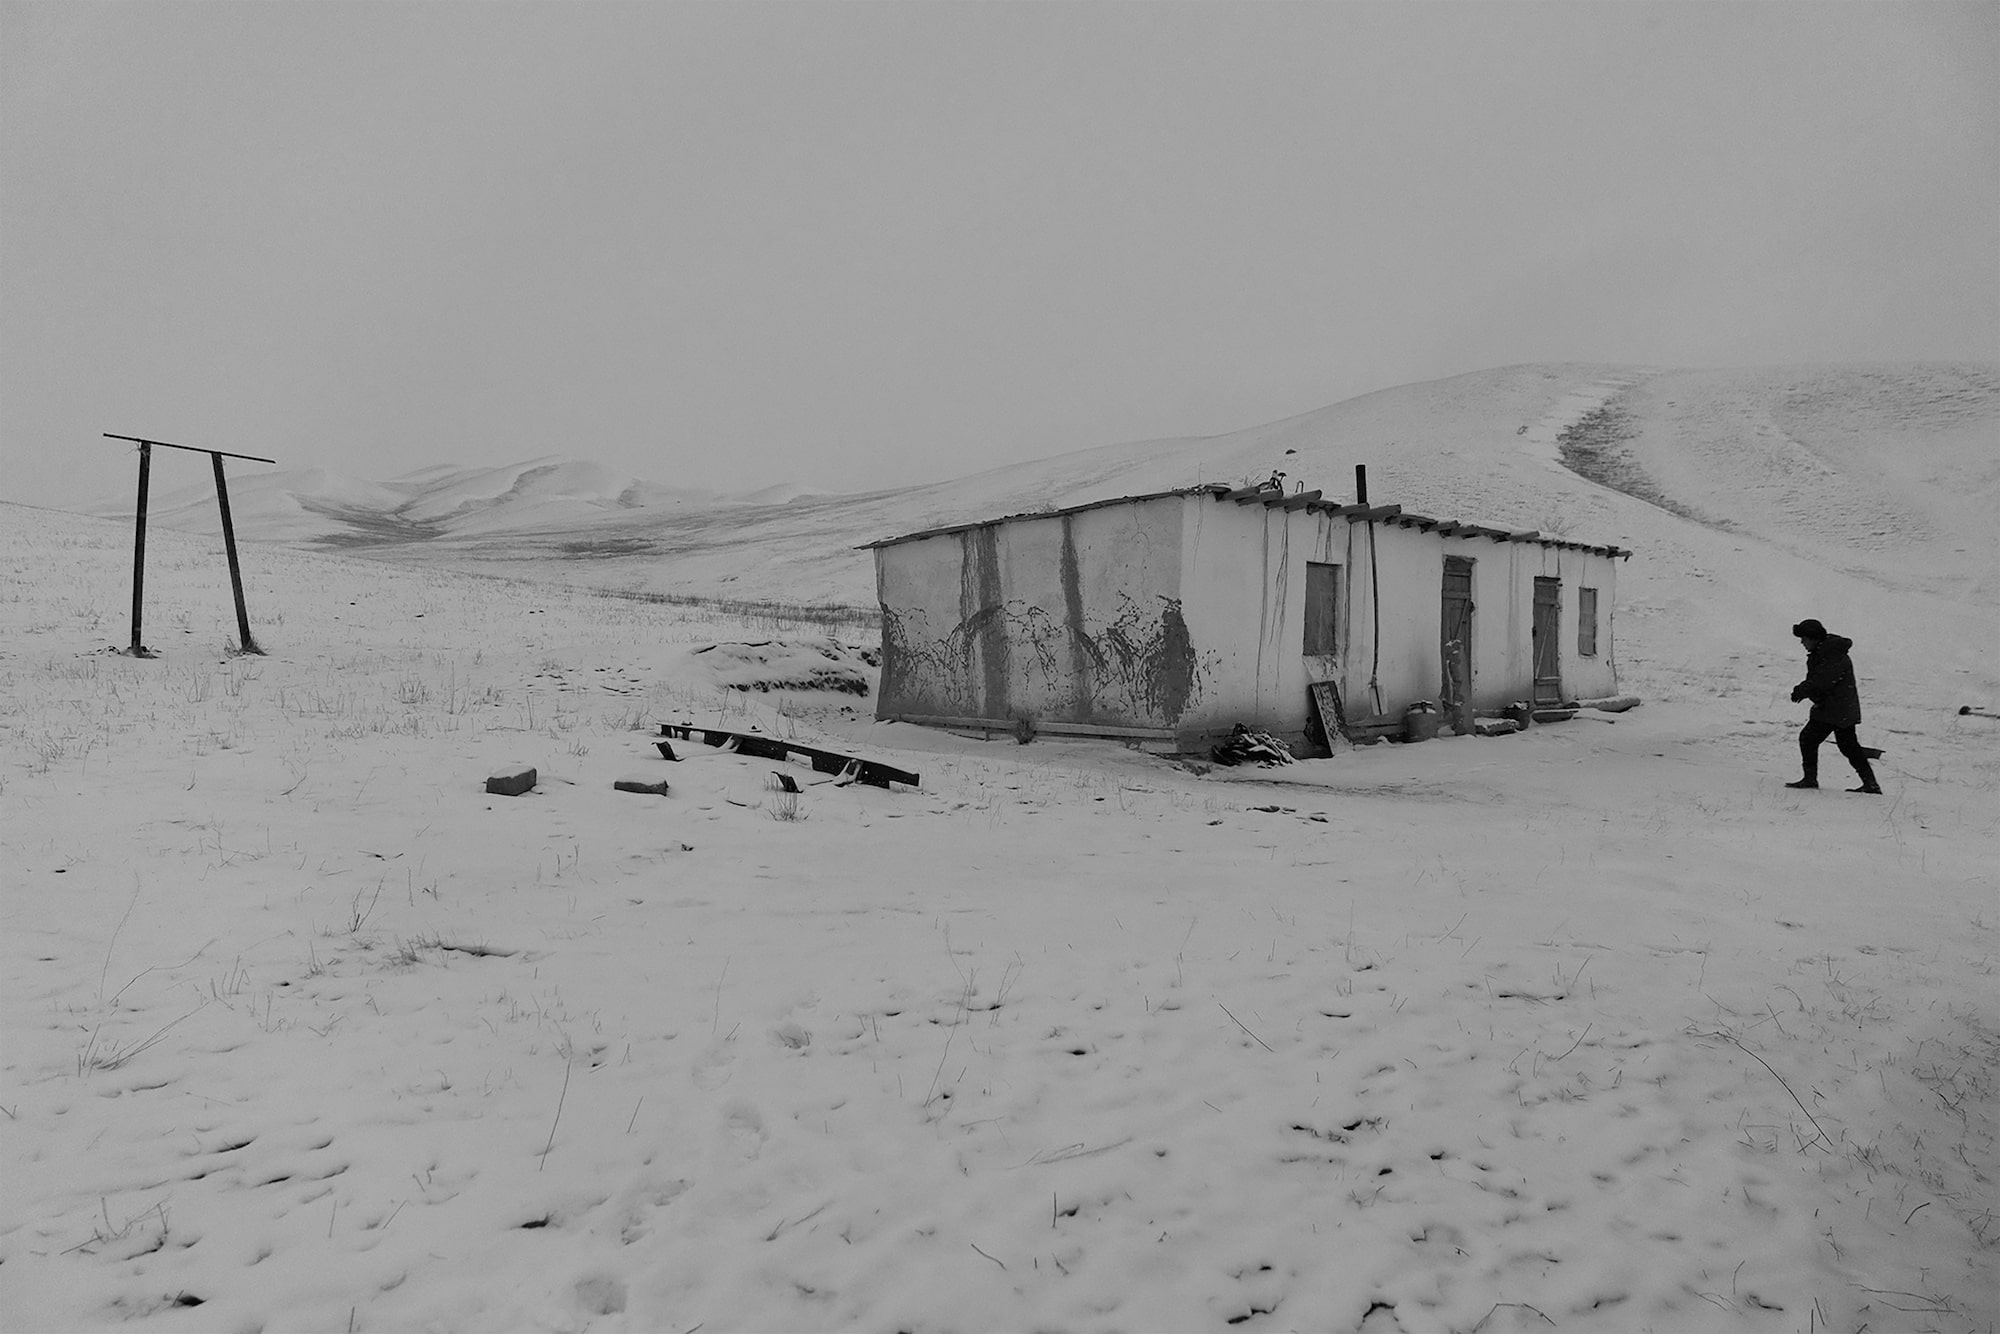 frederik buyckx sony alpha 7RM3 shepherd trudges towards a run down shack in the snowy mountains